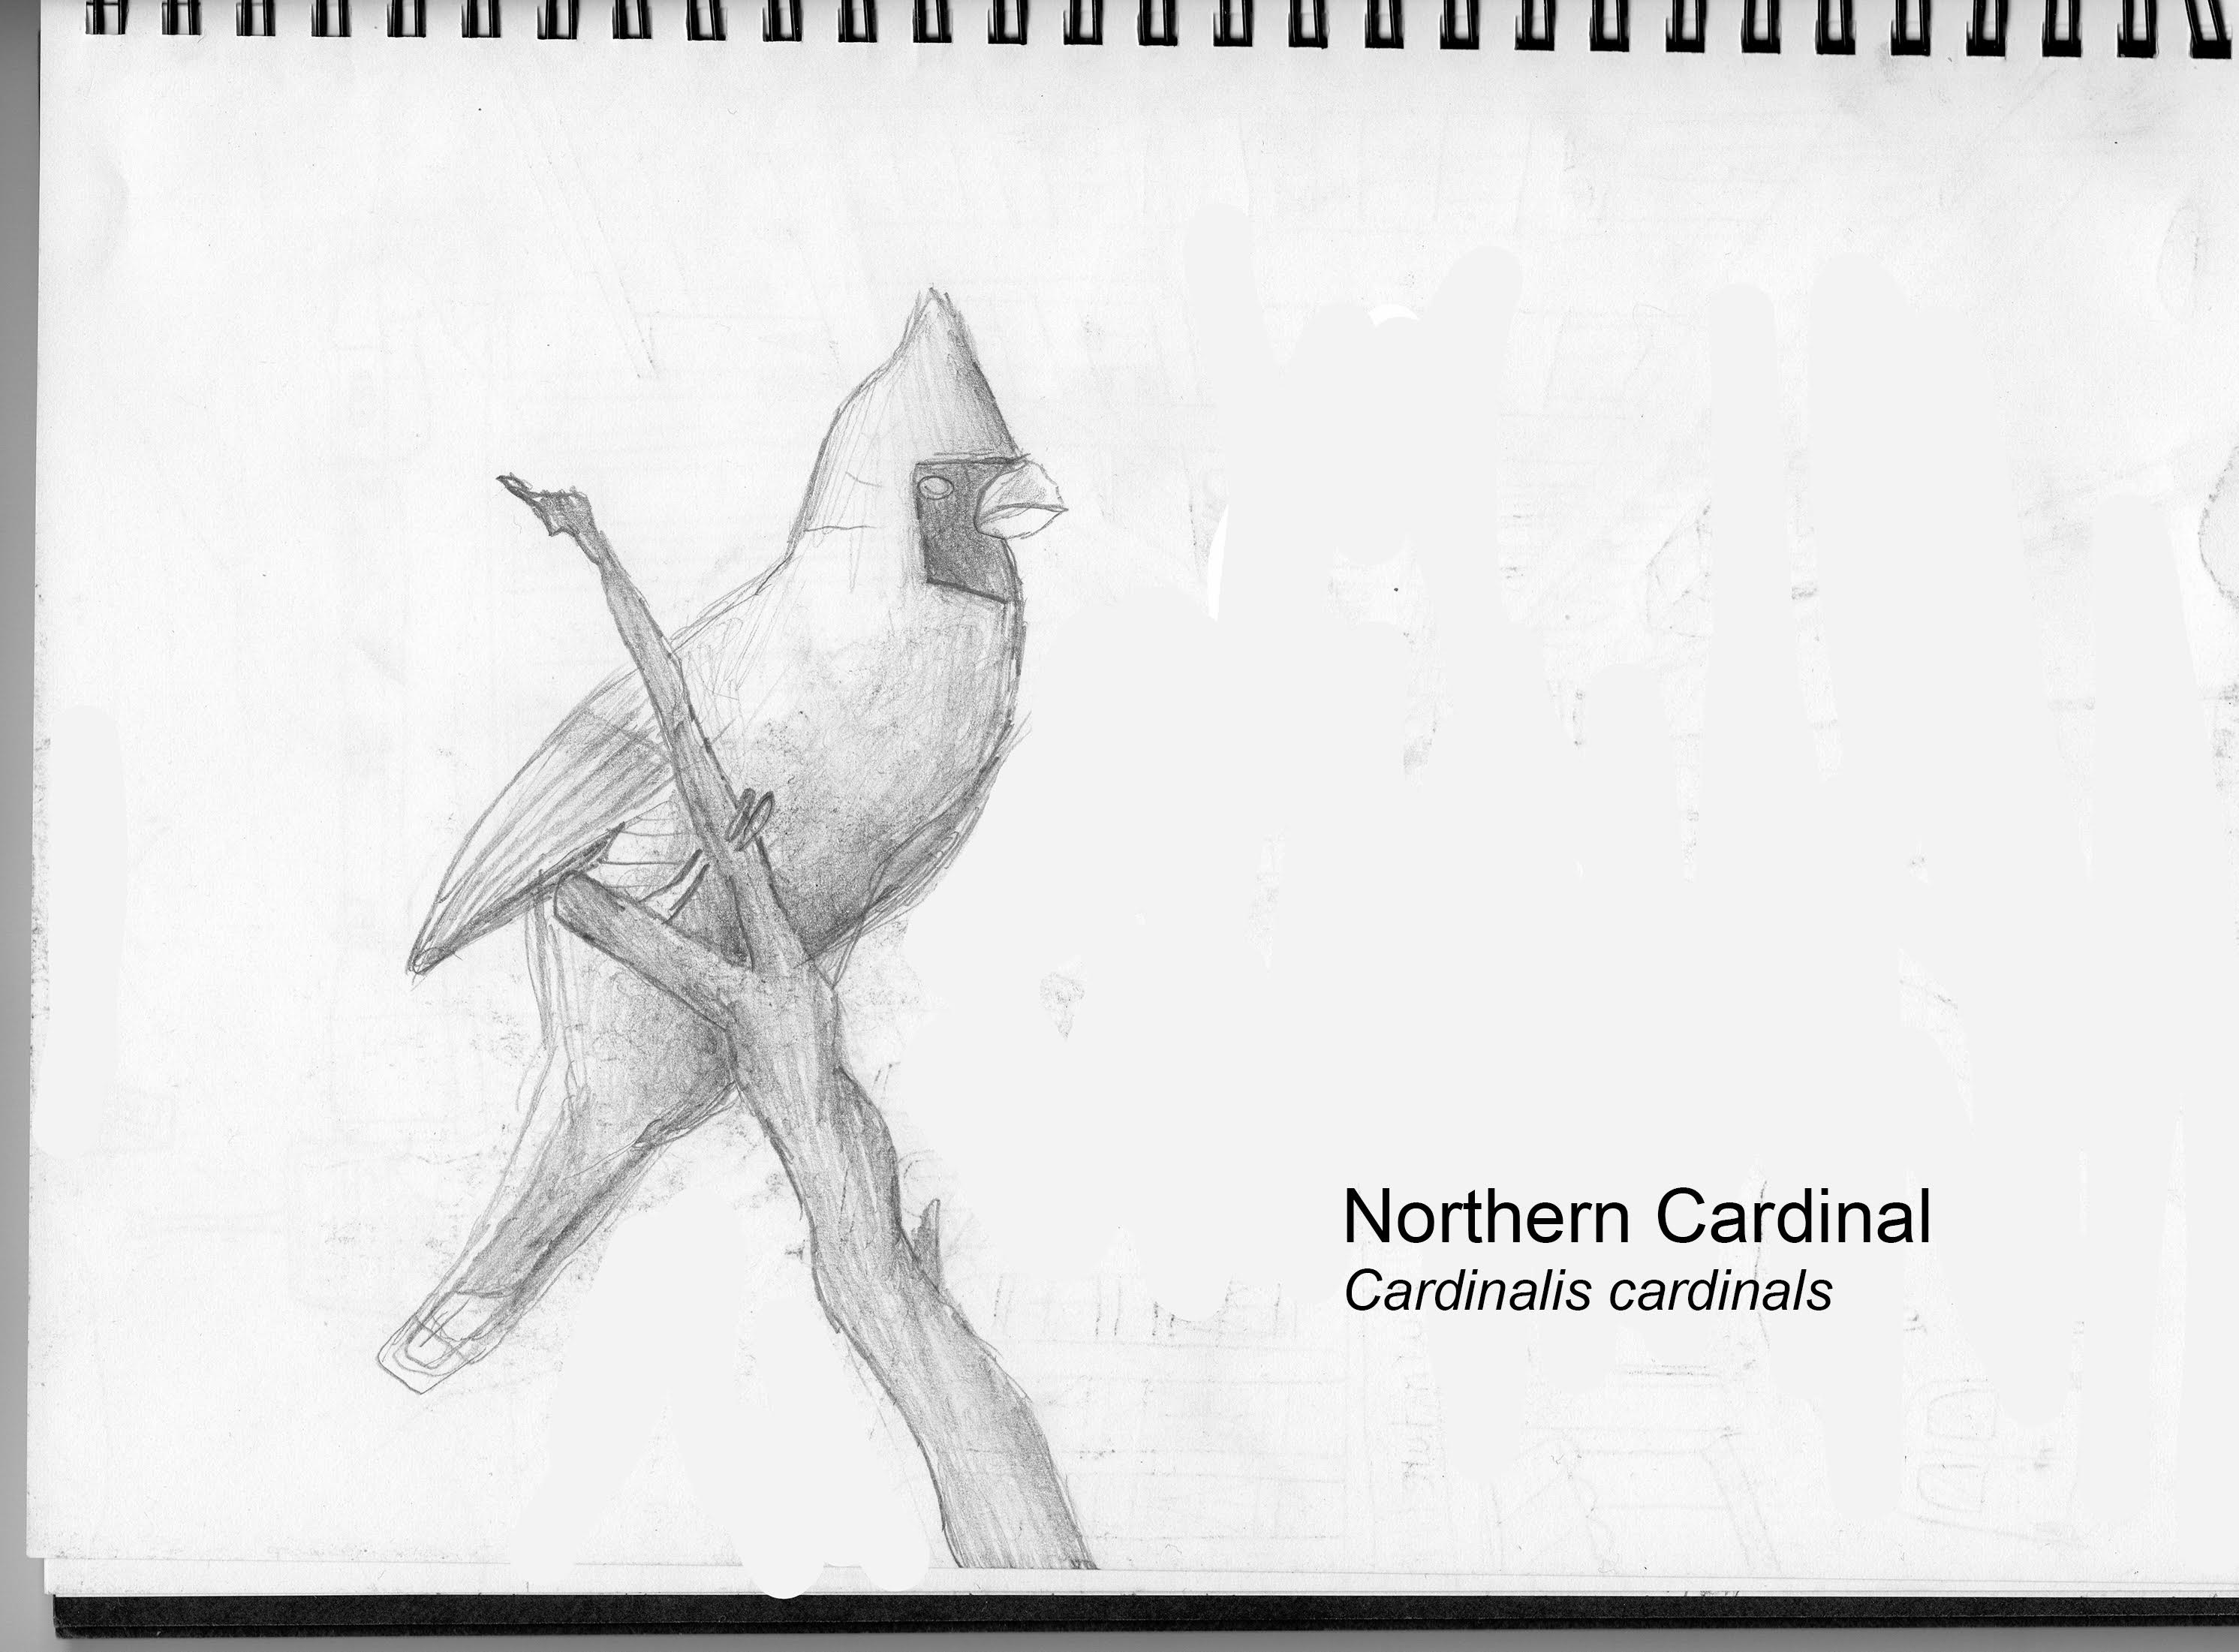 CITY_Alec_Jackman_NorthernCardinal.jpg